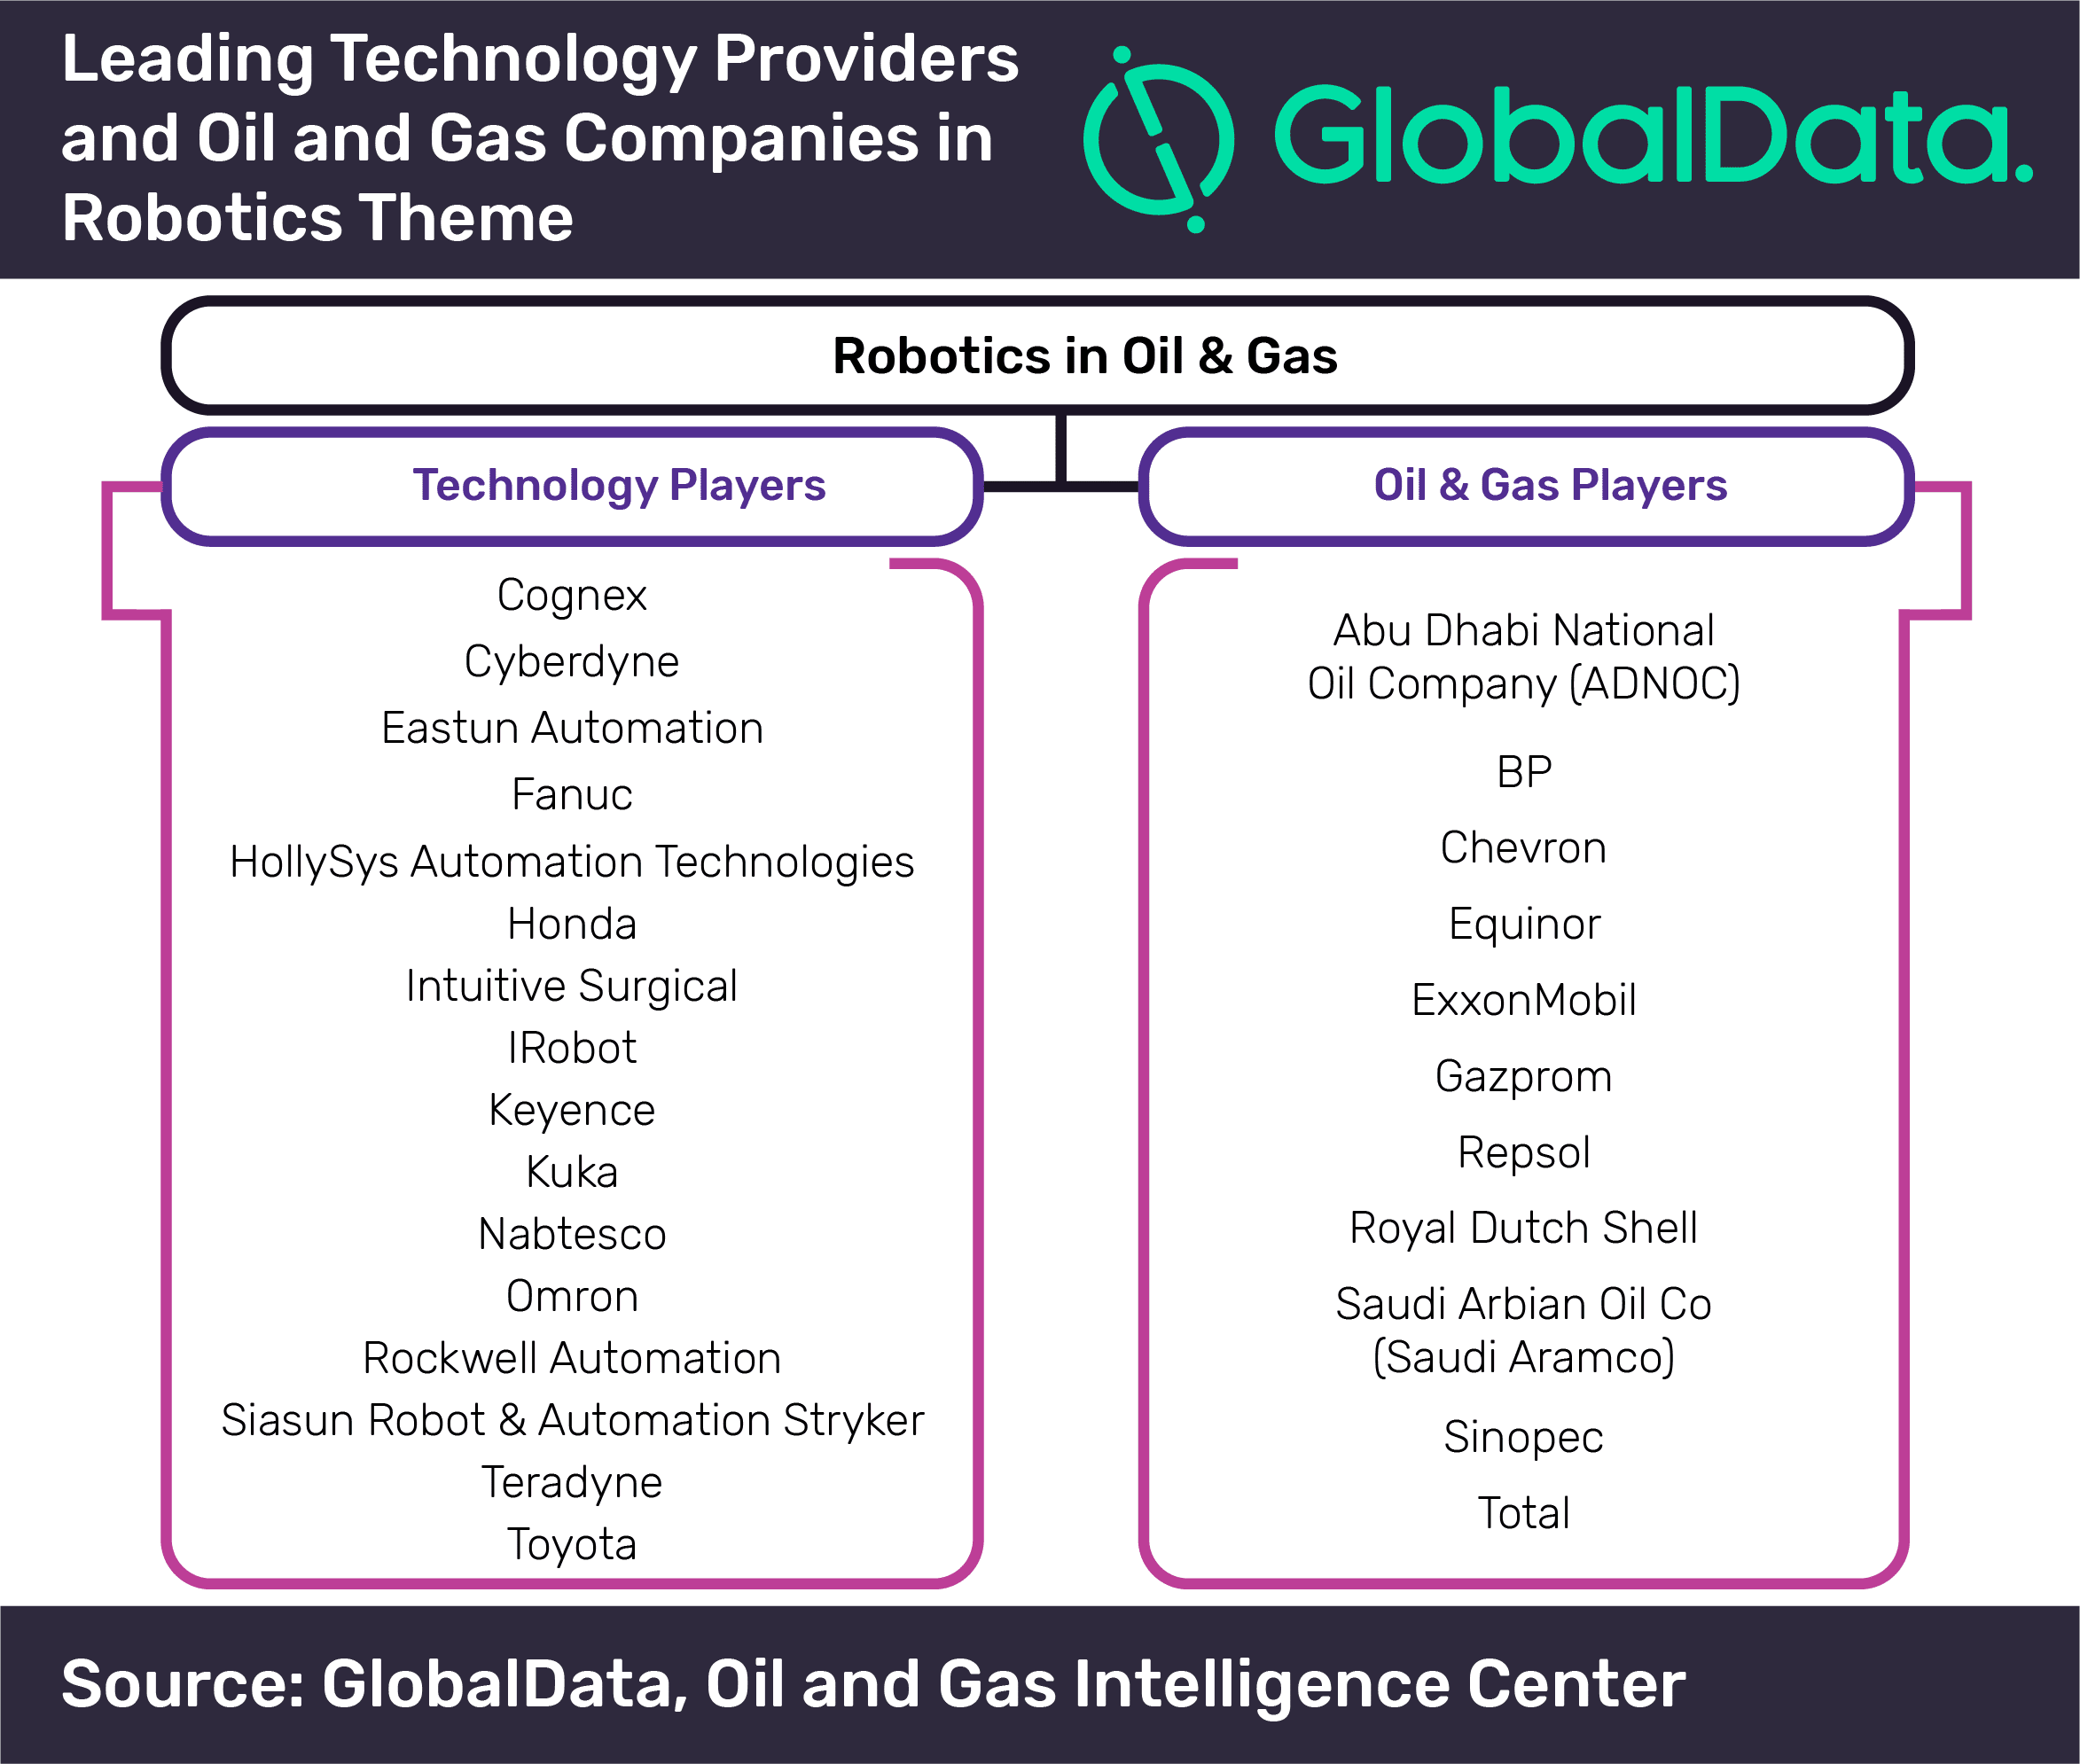 Oil and gas industry gearing up for robotics adoption to drive productivity and efficiency, says GlobalData